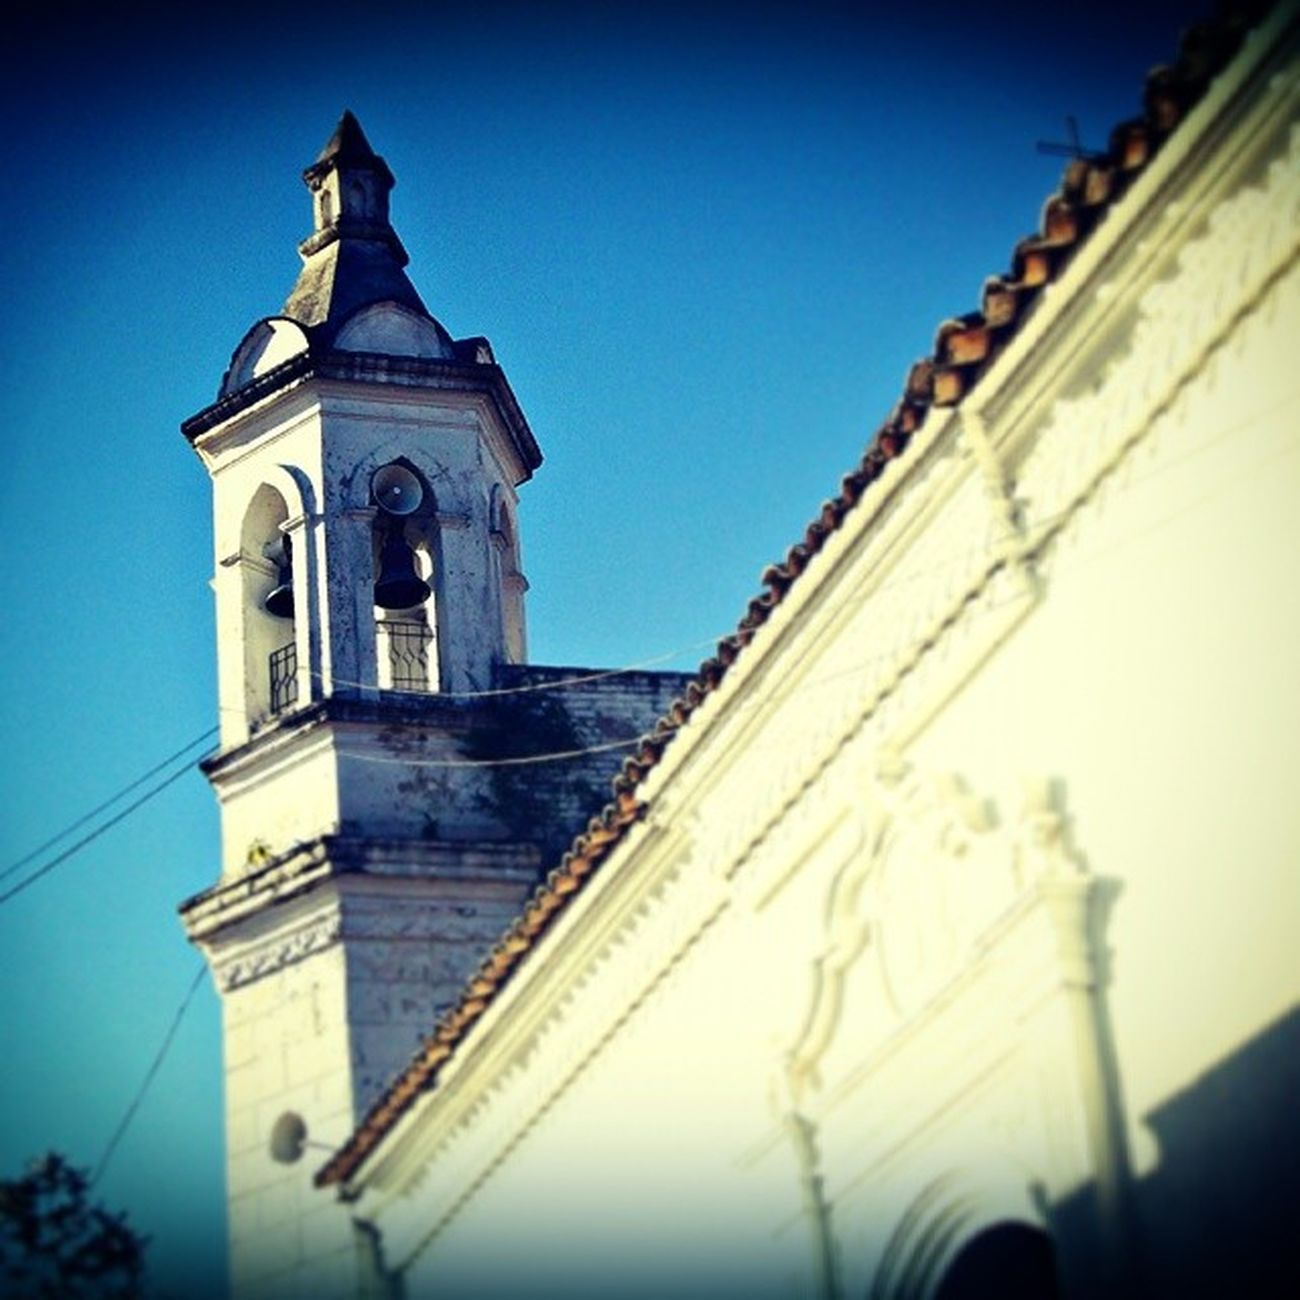 Catedral SRC Honduras Colonial Blue sky nice niceplace instamoment instalike greatplacestovisit